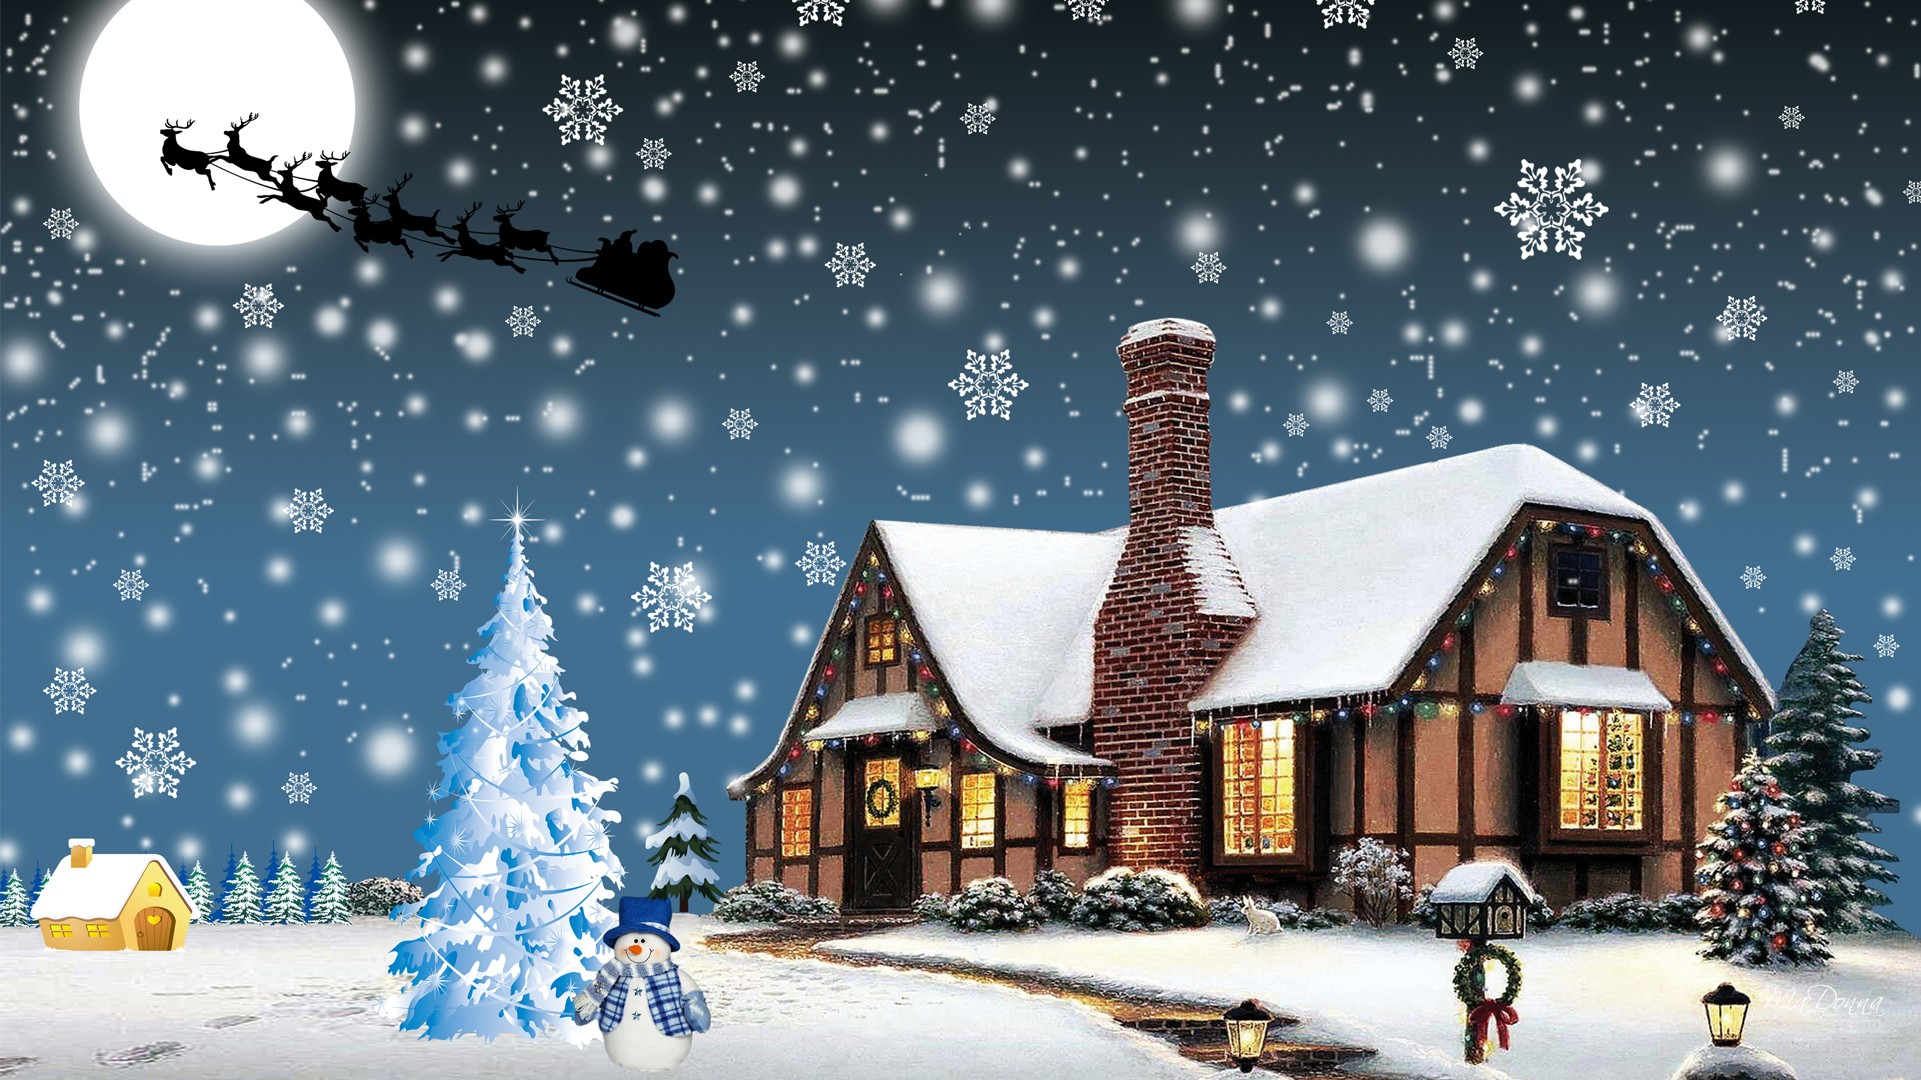 Christmas Eve Wallpaper Free